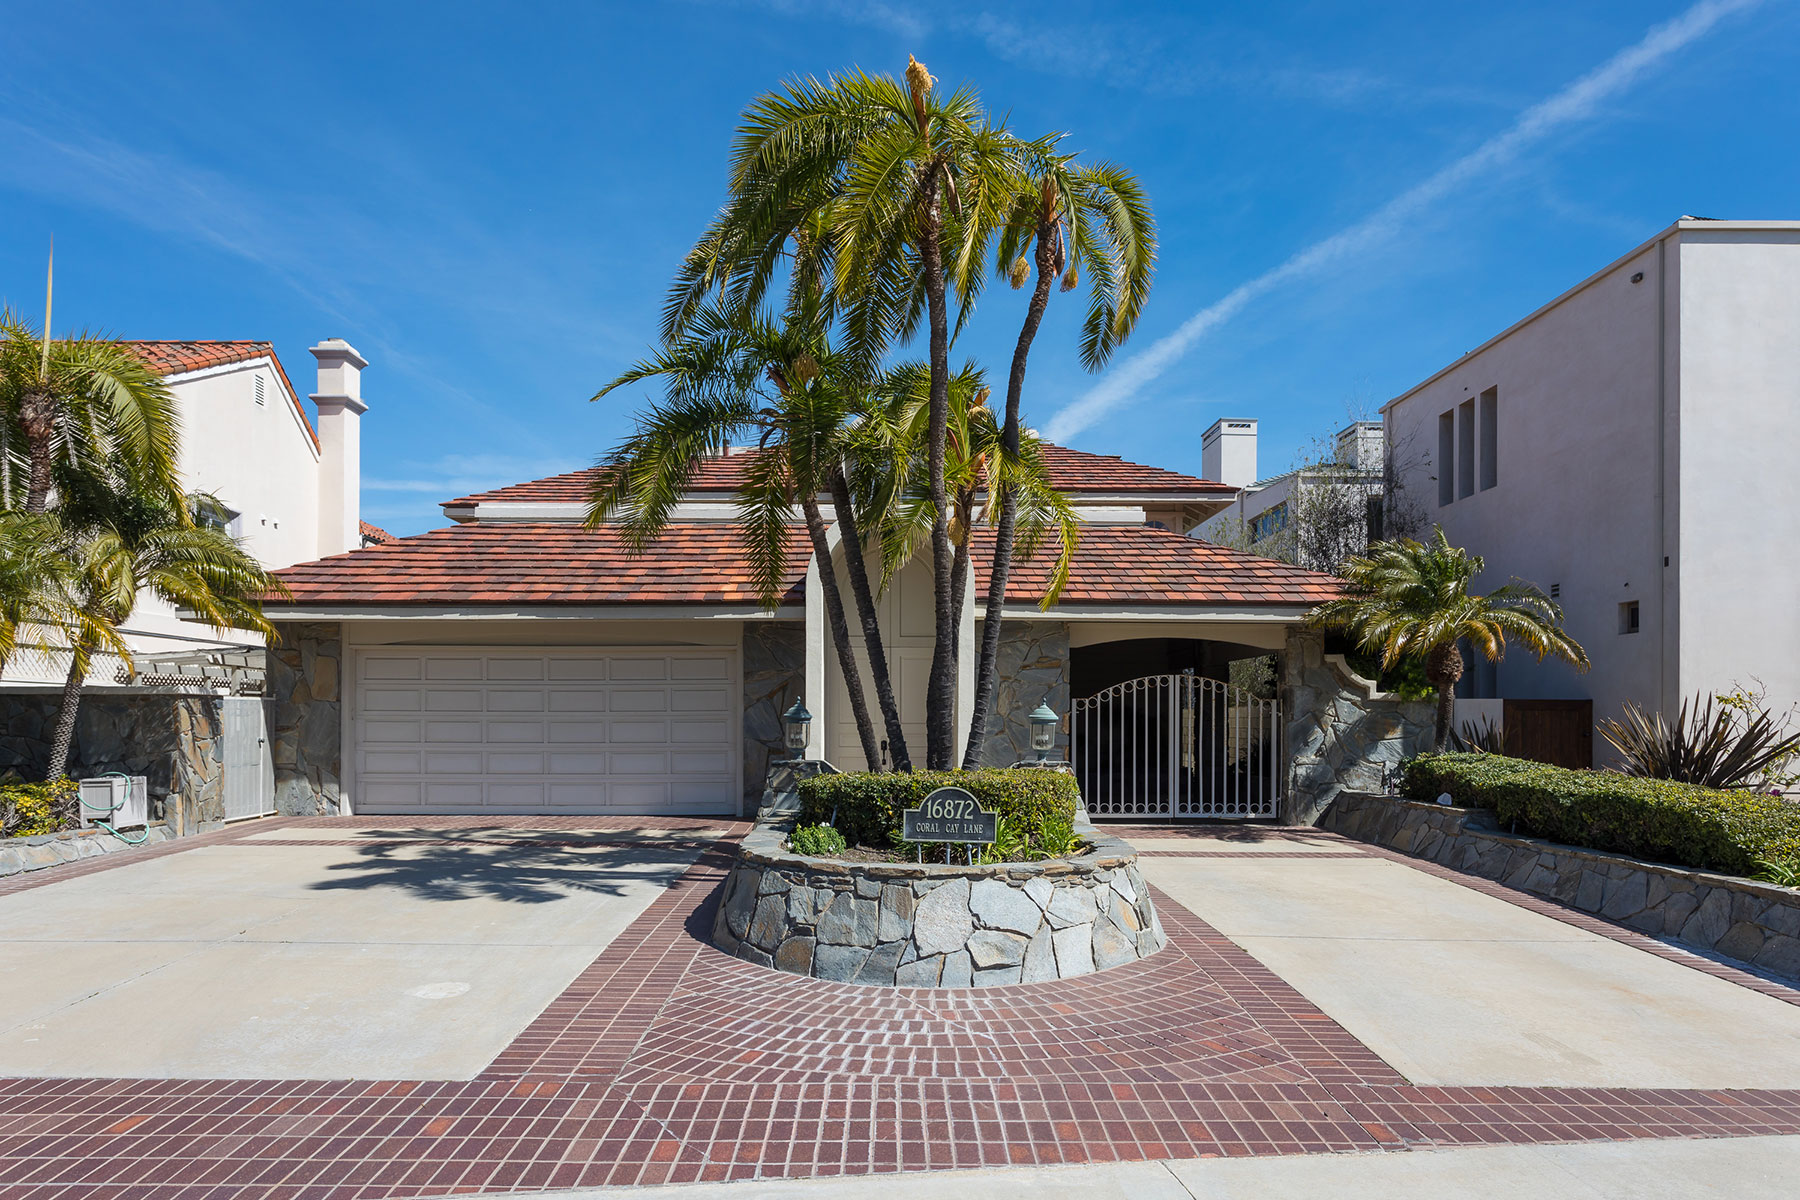 Single Family Home for Sale at 16872 Coral Cay Huntington Beach, California 92649 United States